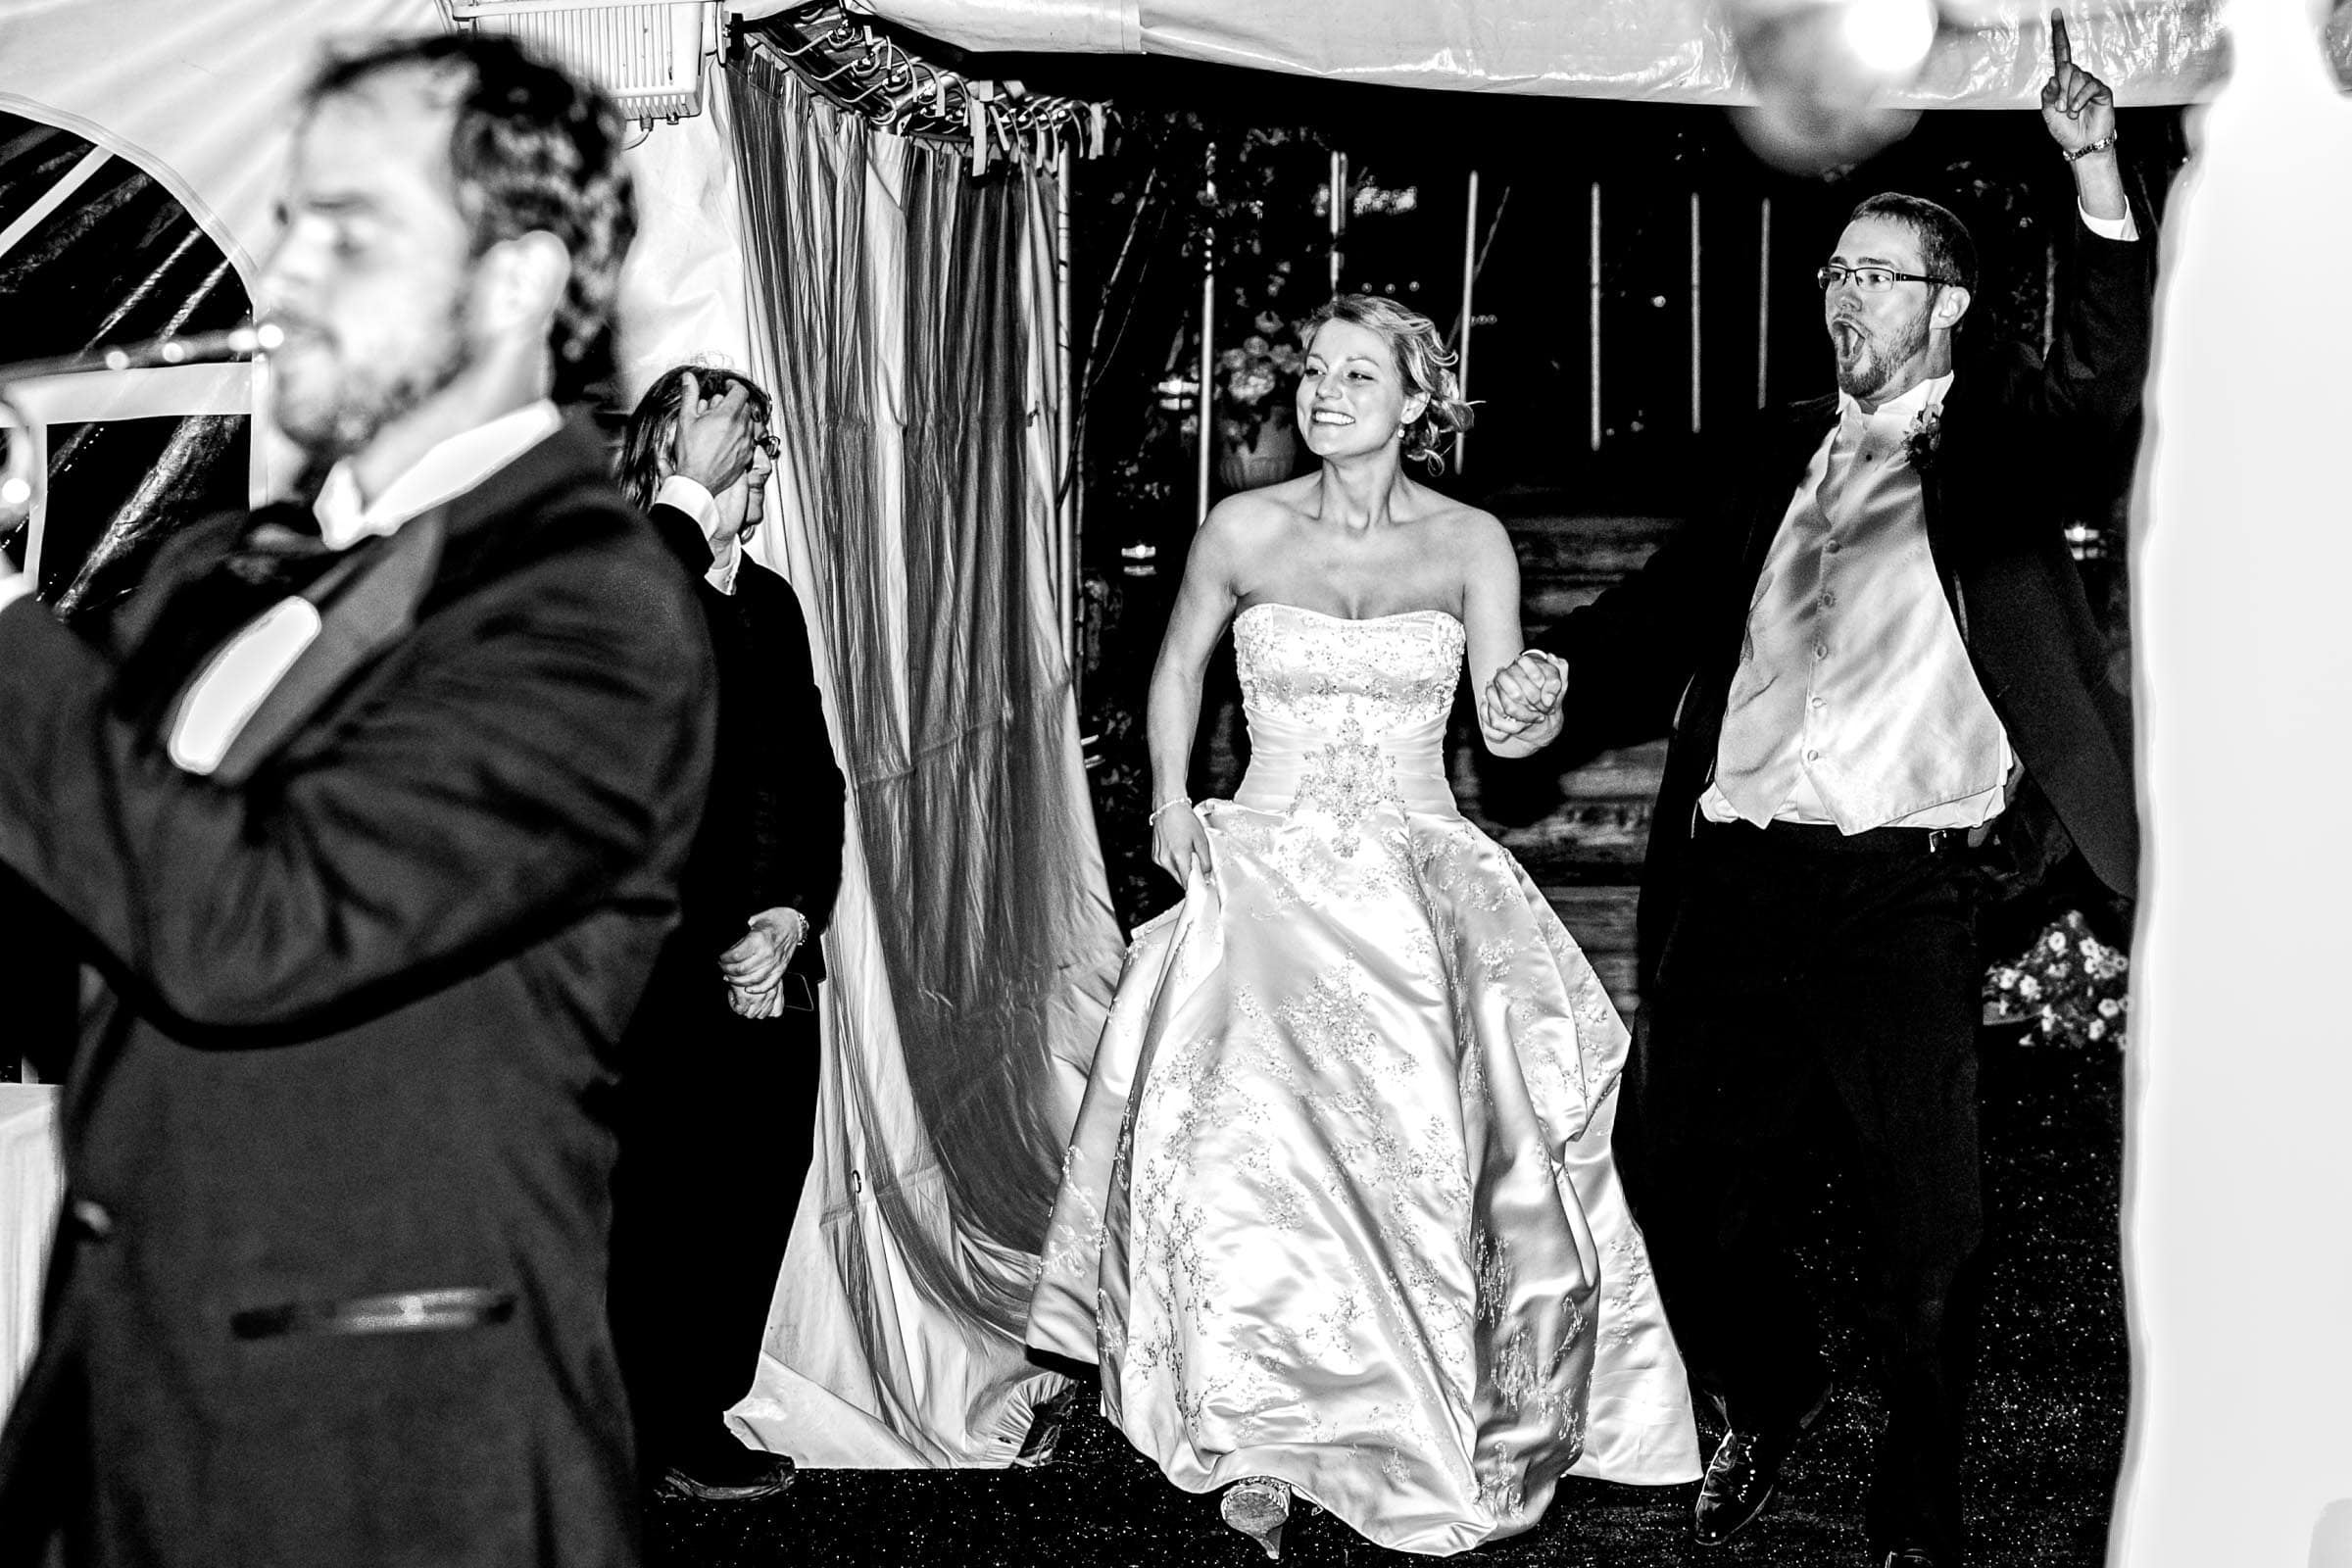 A bride and groom excited while entering their Trapp Family Lodge wedding reception in Stowe, Vermont.